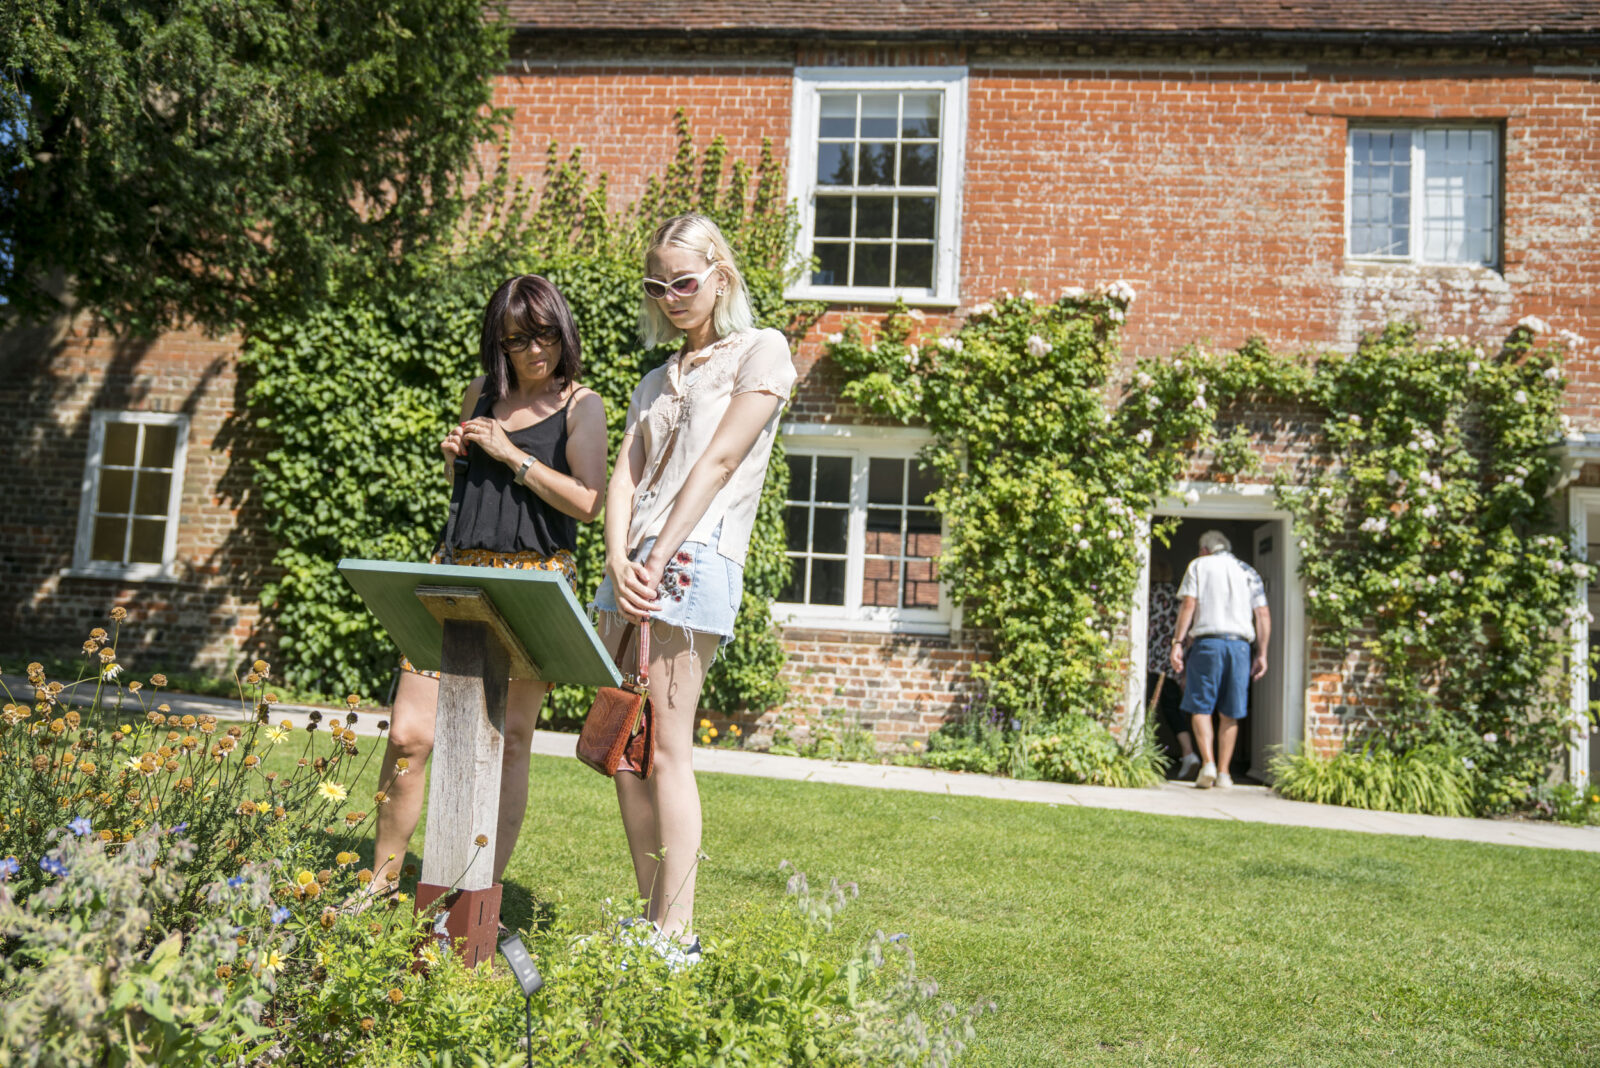 Visitors in the garden at Jane Austen's House